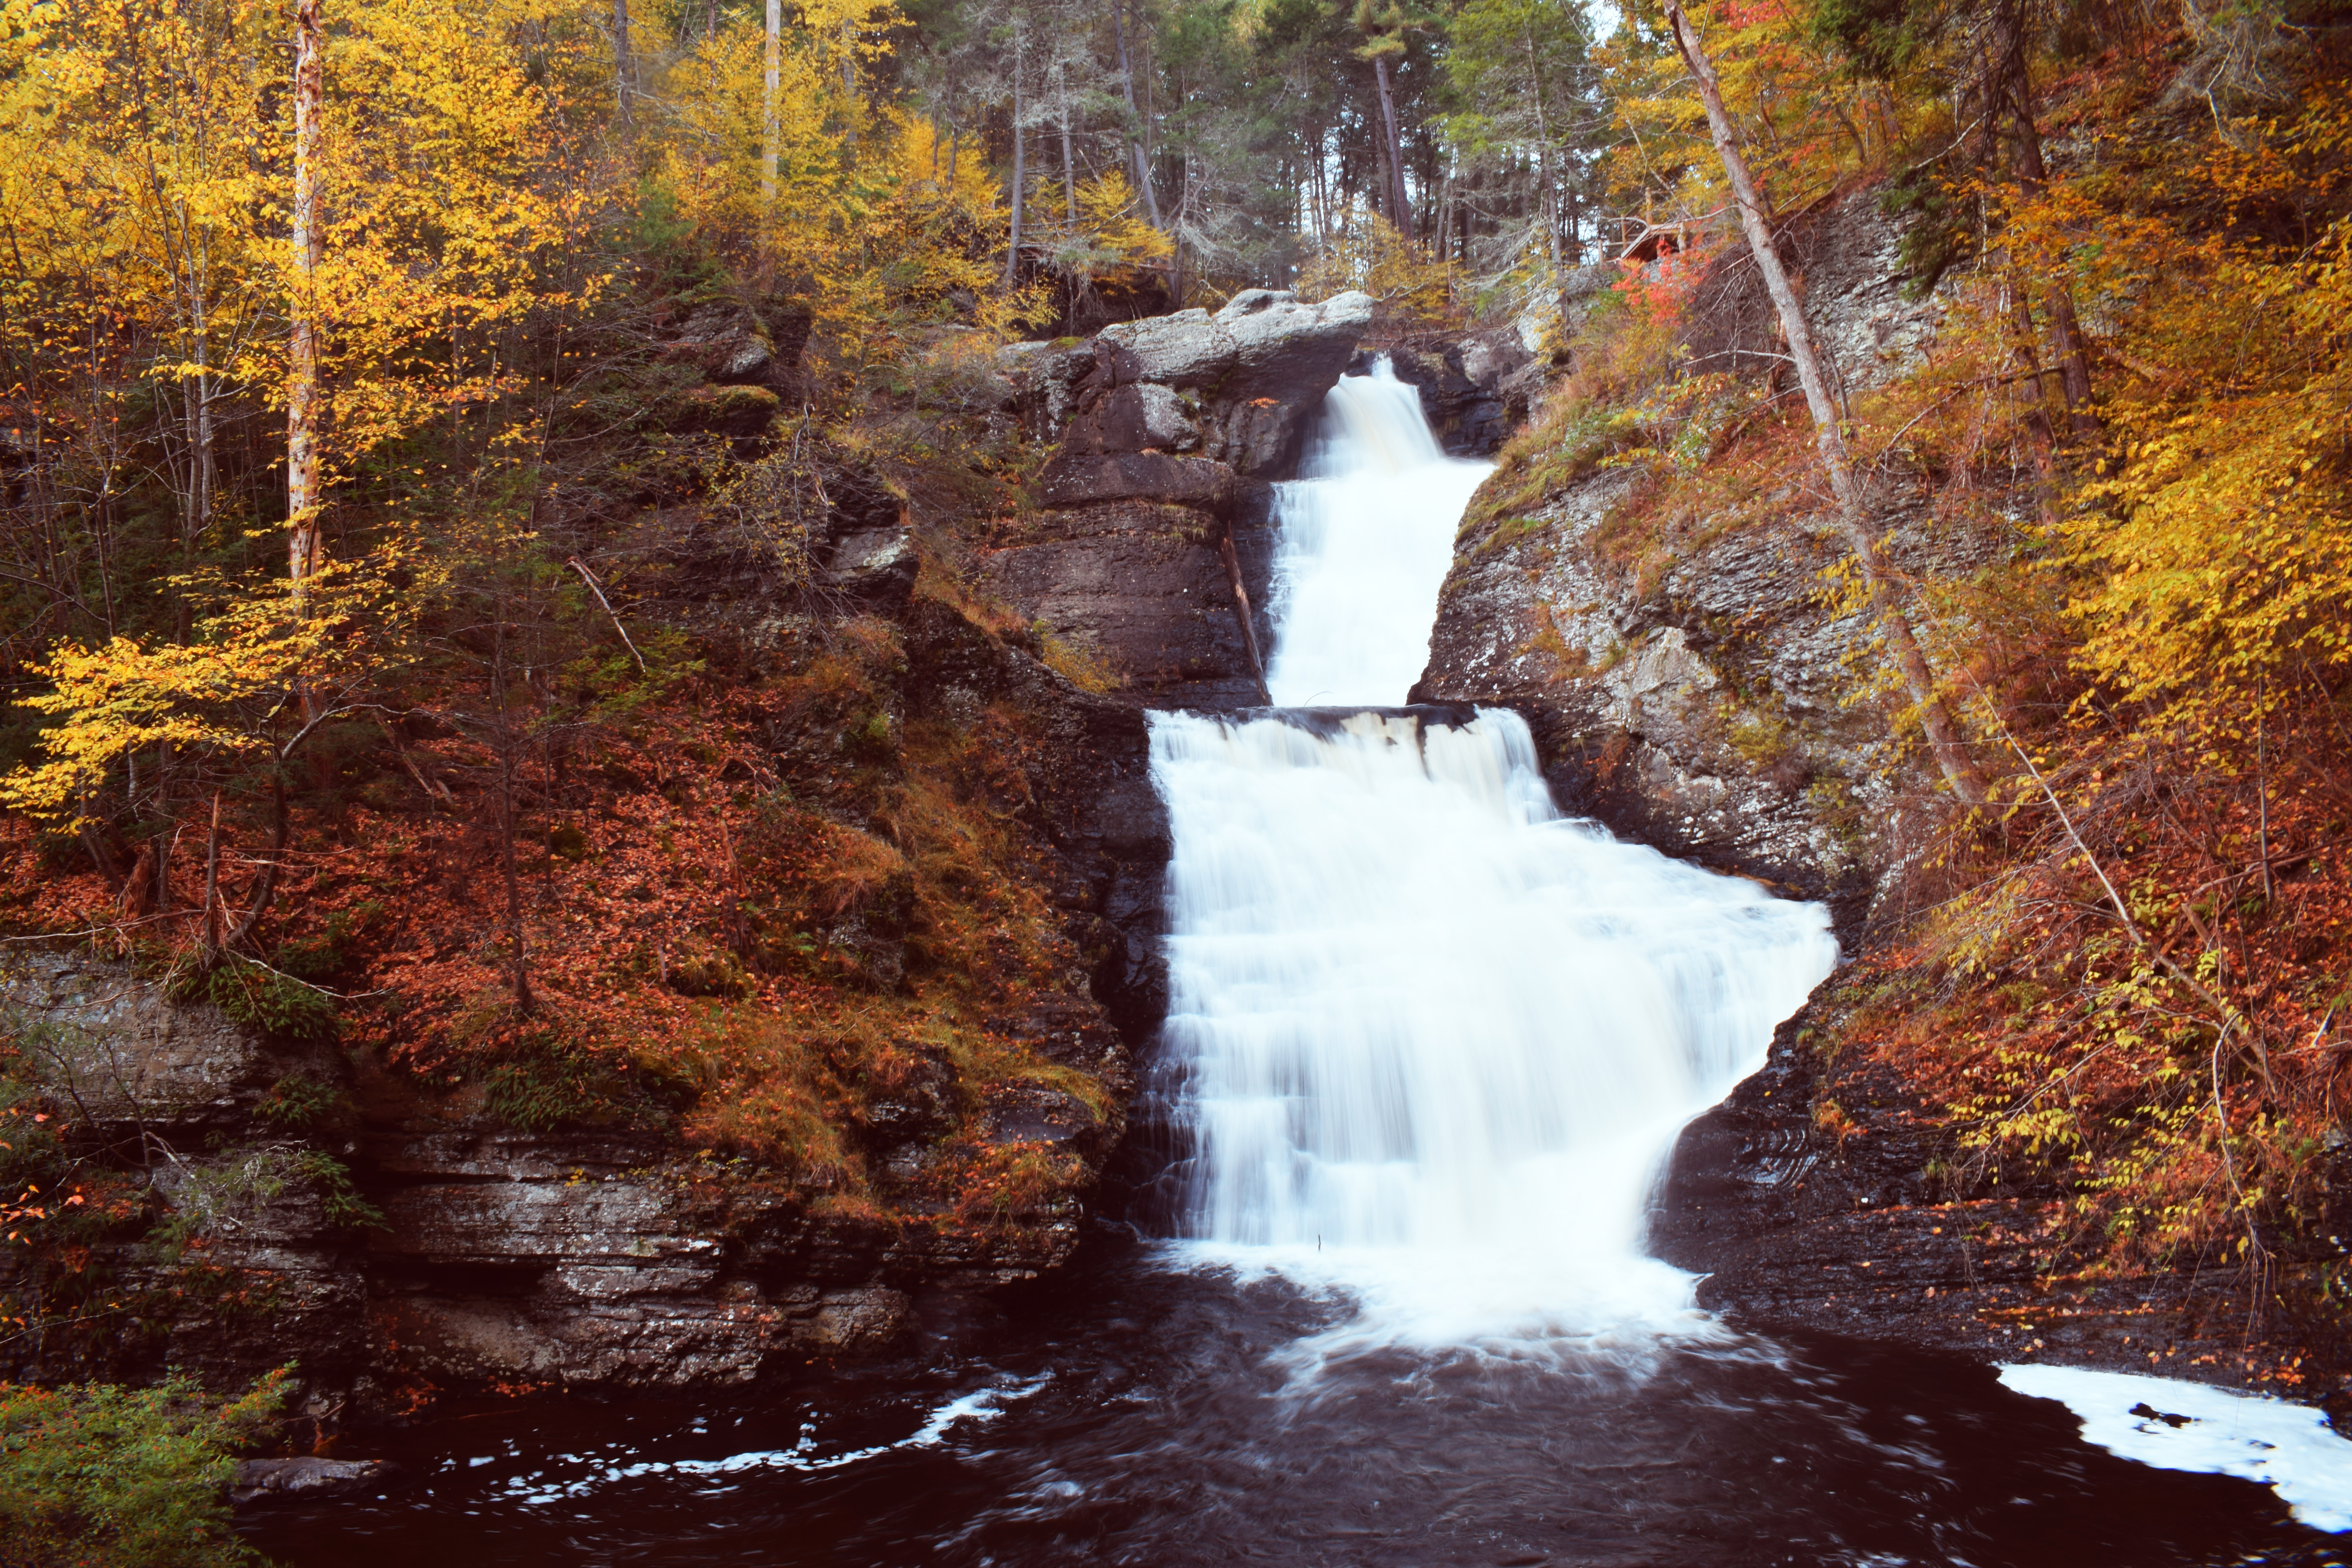 Poconos Waterfalls | Locations, Trails & Attractions on route 11 pa map, route 33 pa map, route 220 pa map, route 611 pa map, route 100 pa map, route 83 pa map, route 309 pa map, route 29 pa map, route 82 pa map, route 51 pa map, route 15 pa map, route 23 pa map,